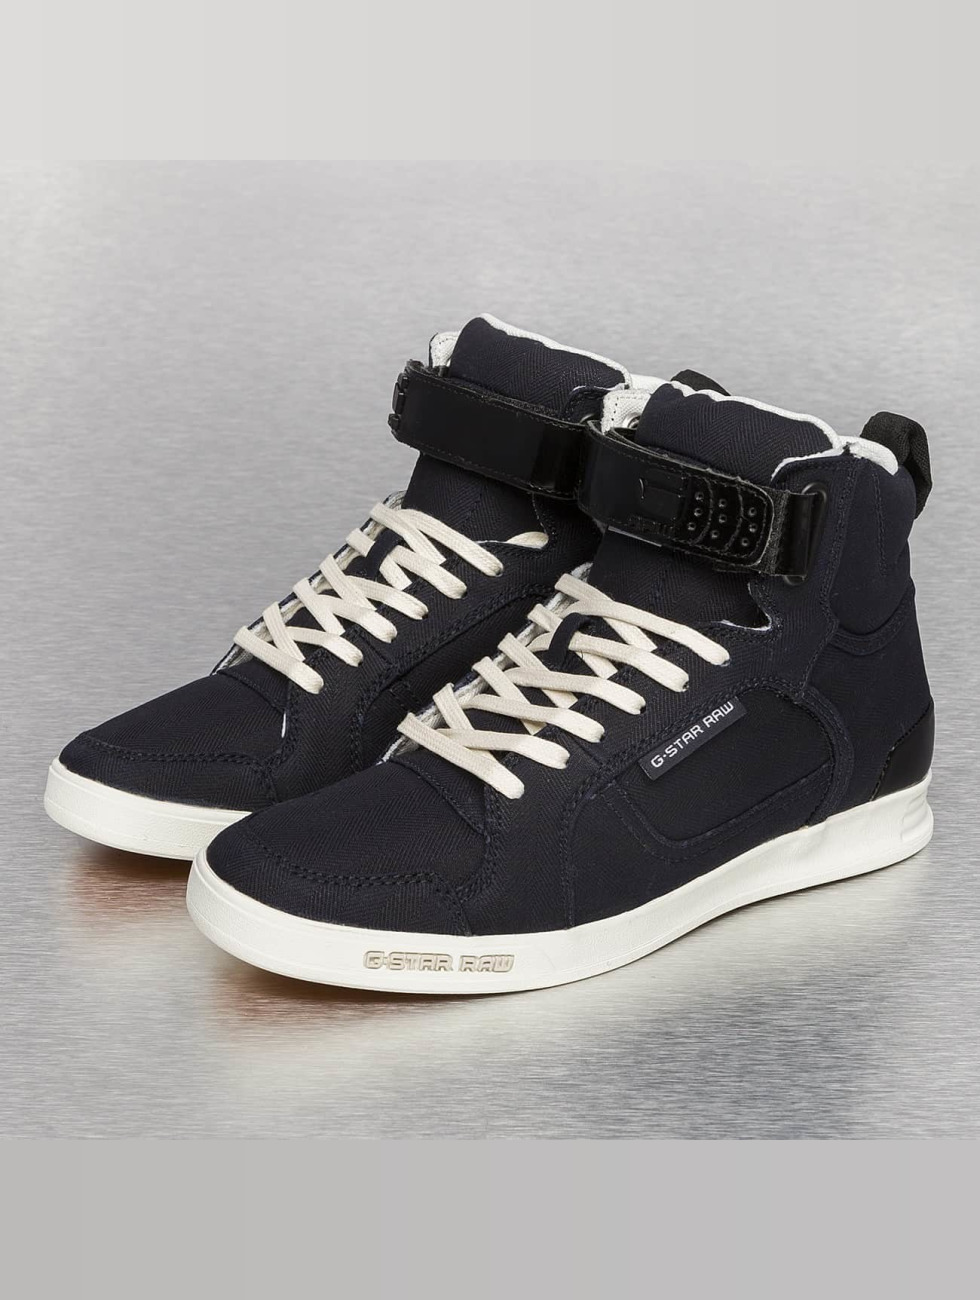 G-star Calzature Pattino / Resa Sneaker In Blu 237 902 ktkl4dTWXL